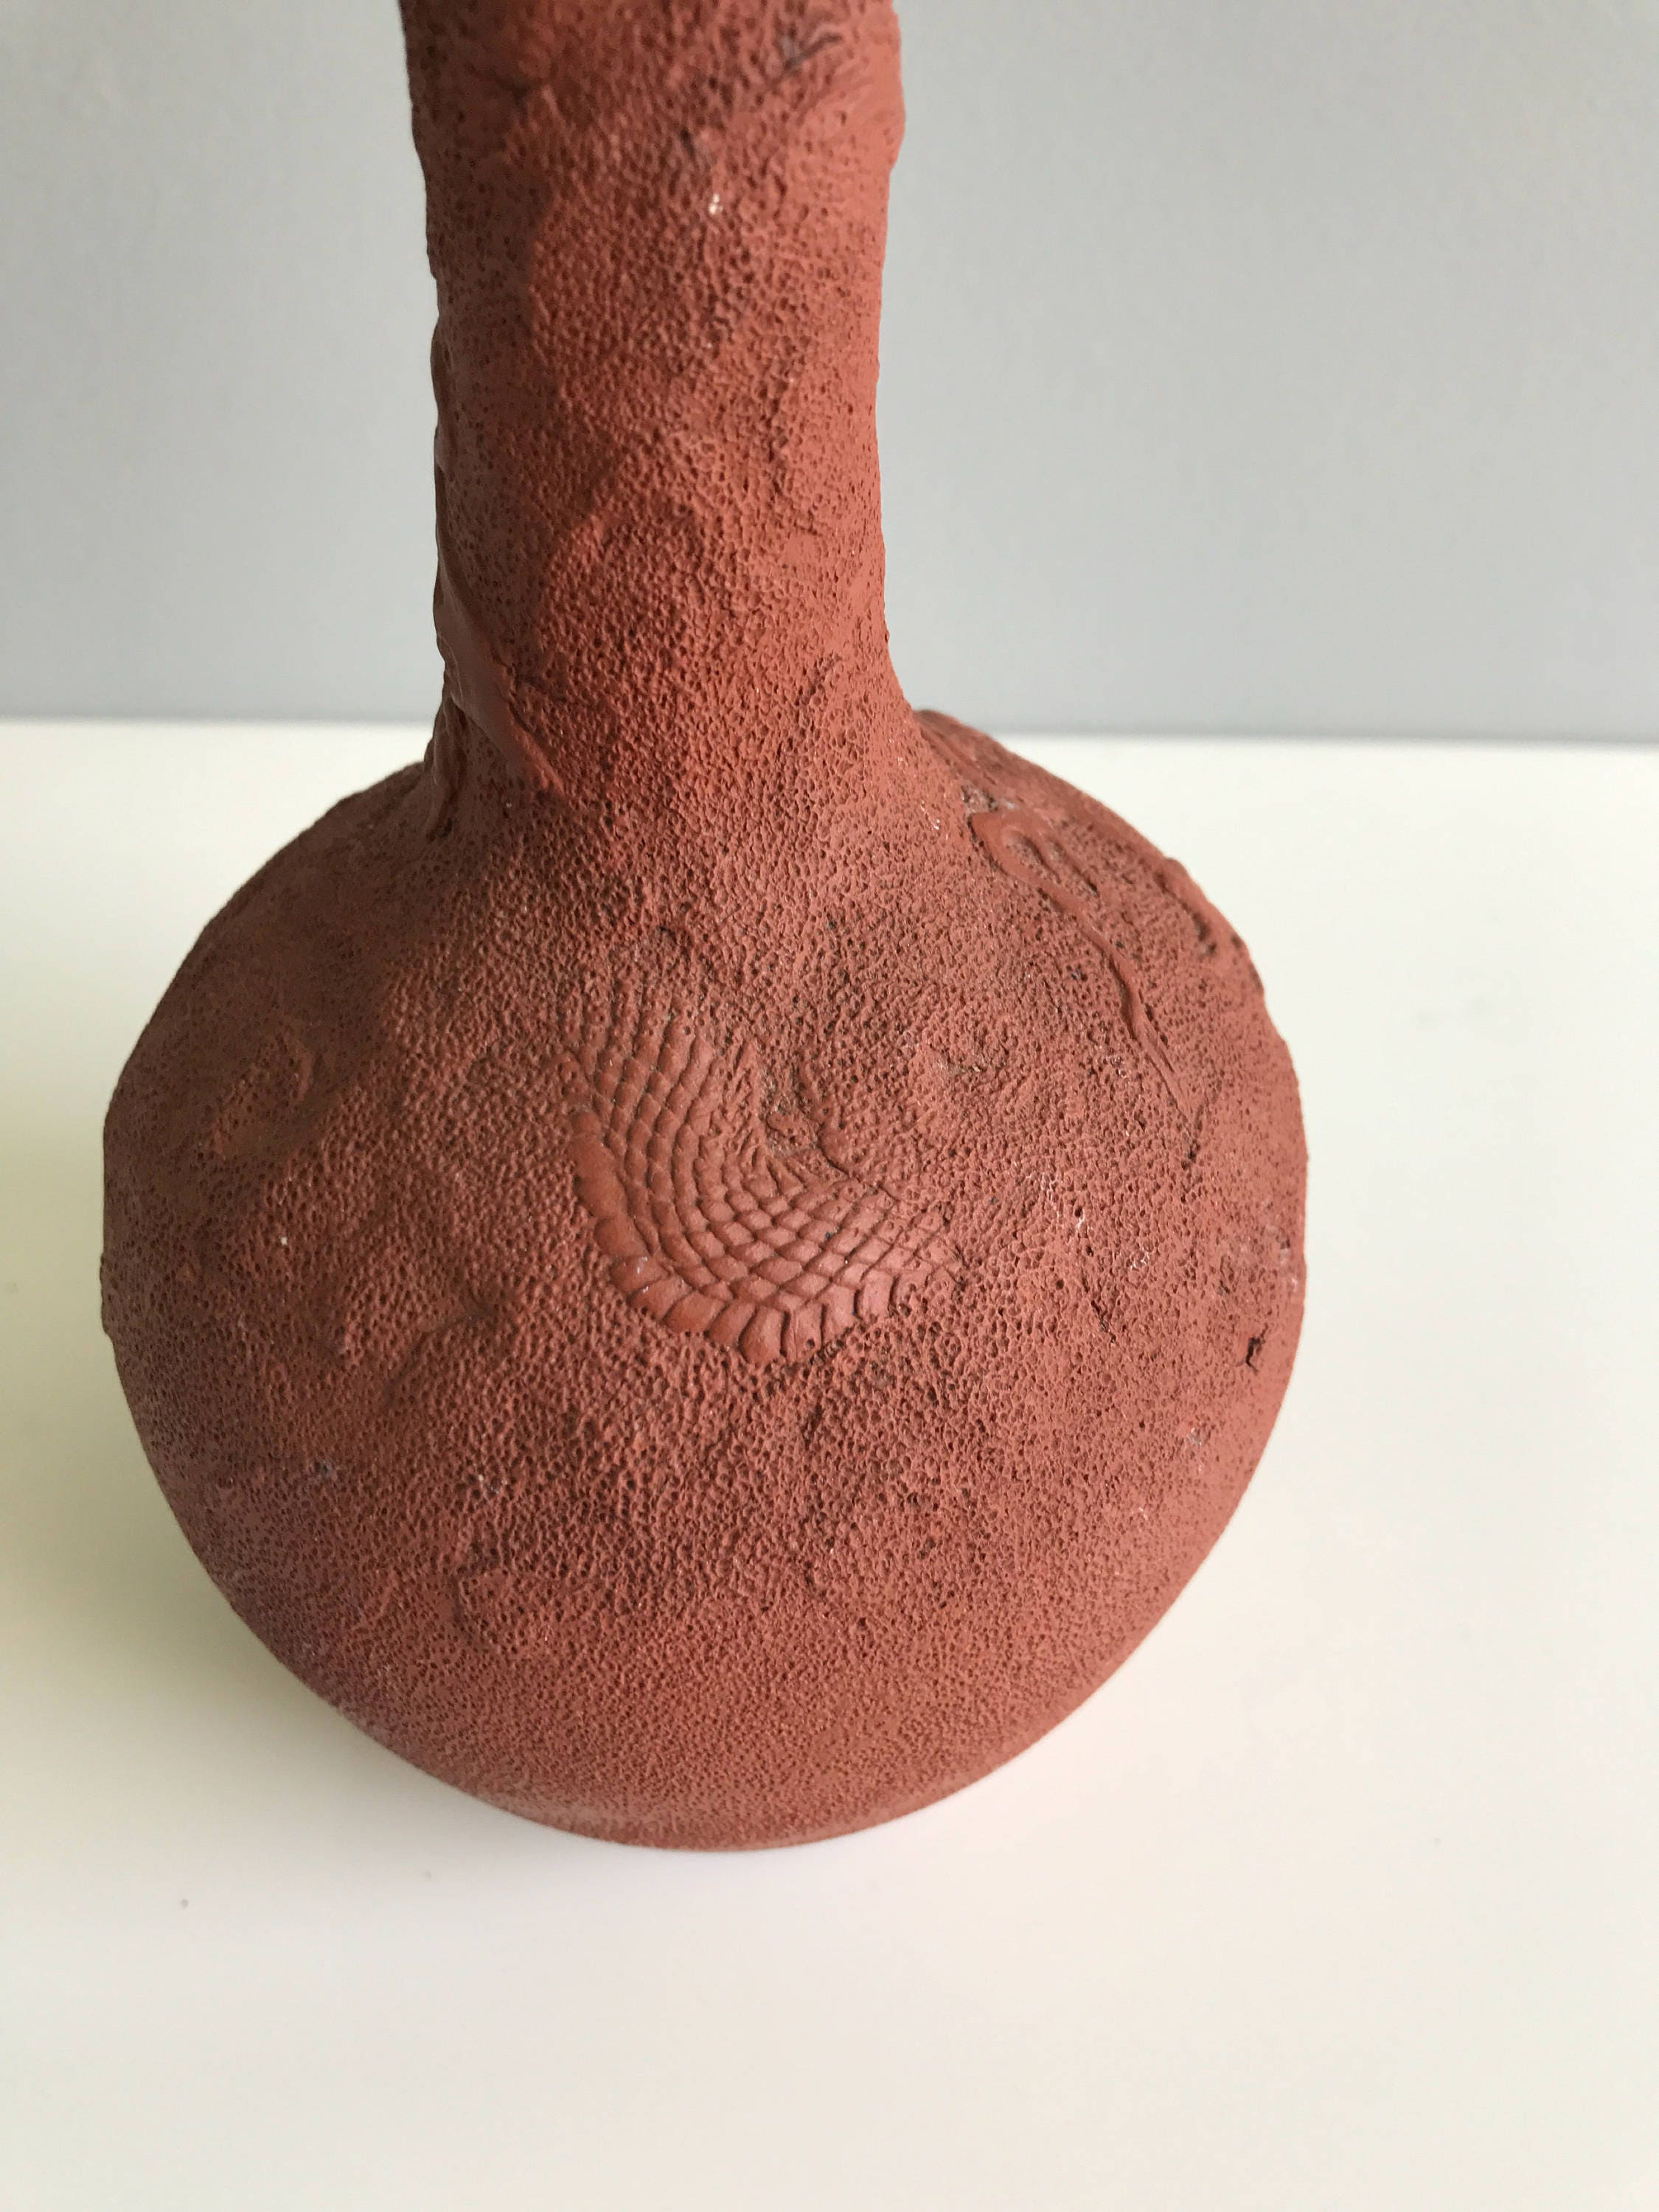 Chinese terracotta vase with dragons chinoisserie terra cotta chinese terracotta vase with dragons chinoisserie terra cotta vase yixing vase antique chinese reviewsmspy